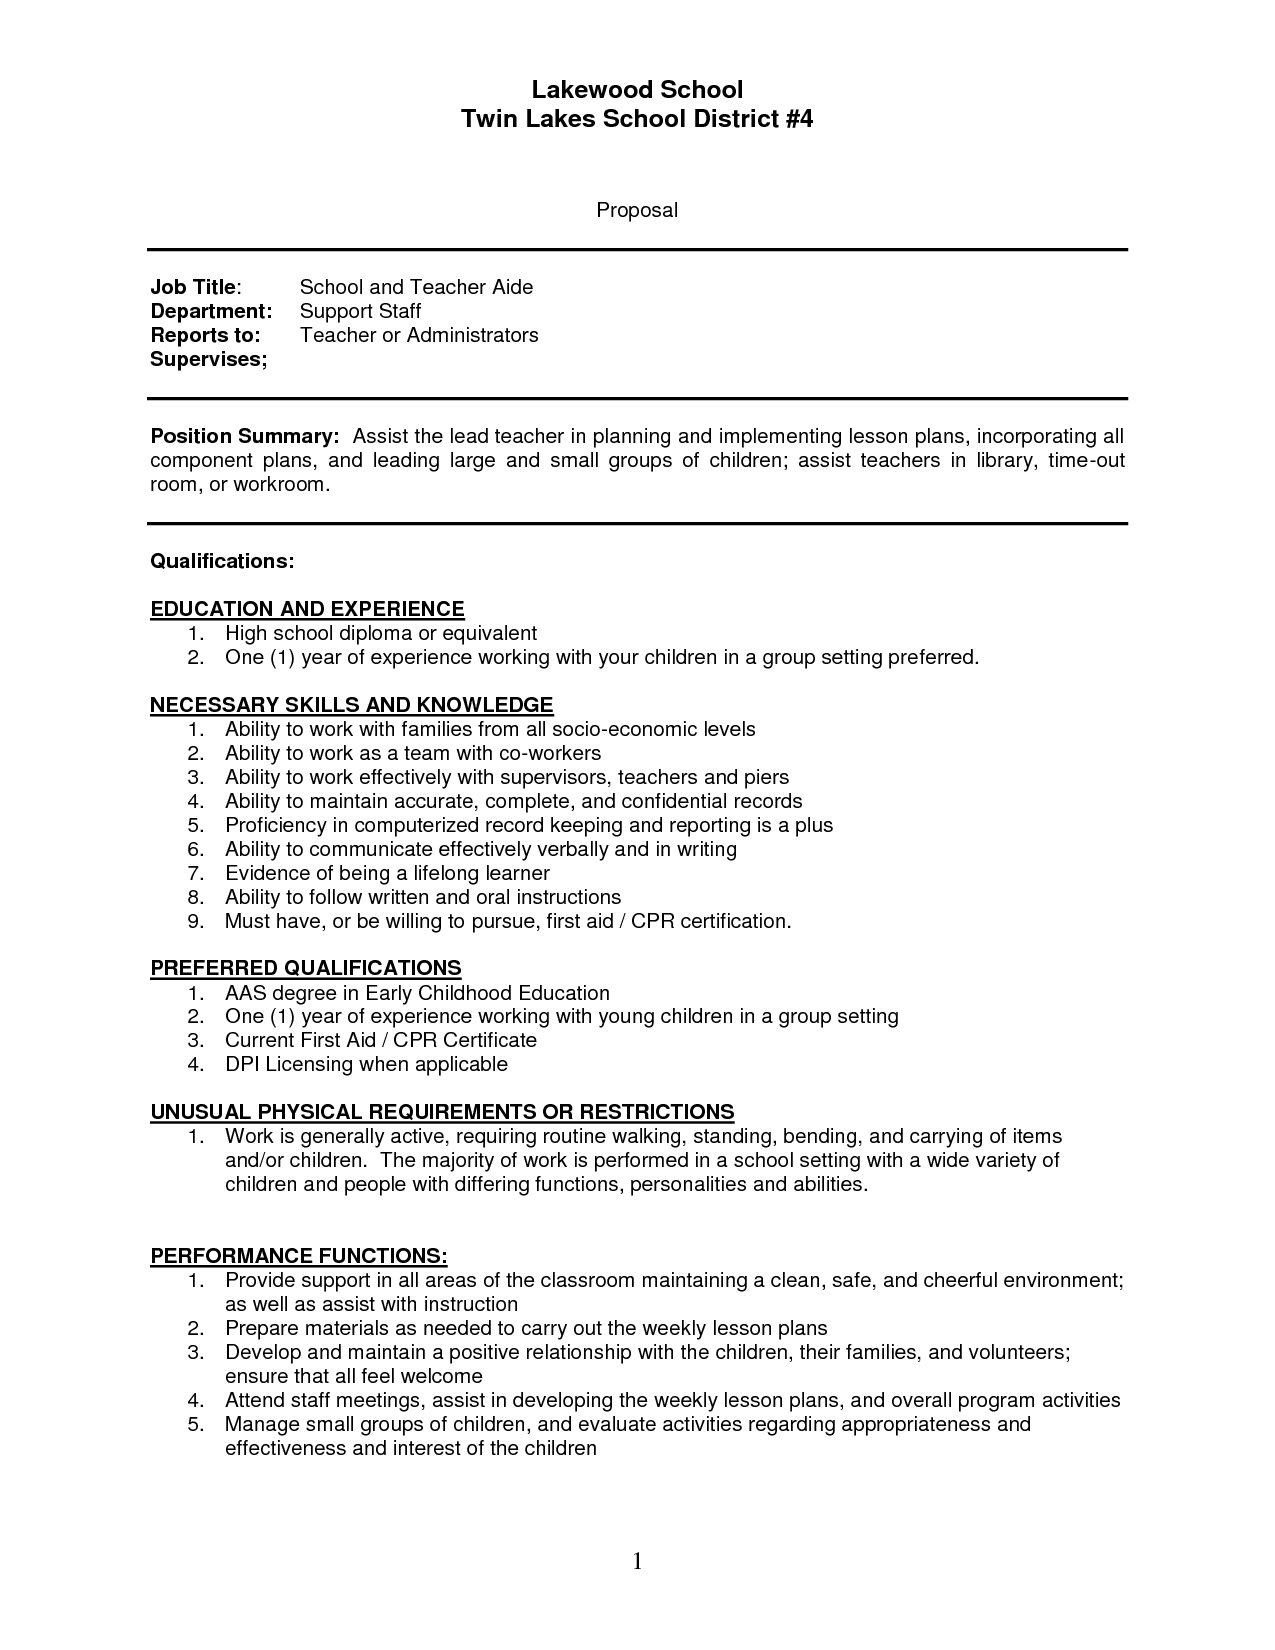 Teacher Assistant Resume Teacher Assistant Sample Resume Sample Resume Of Teachers Aides